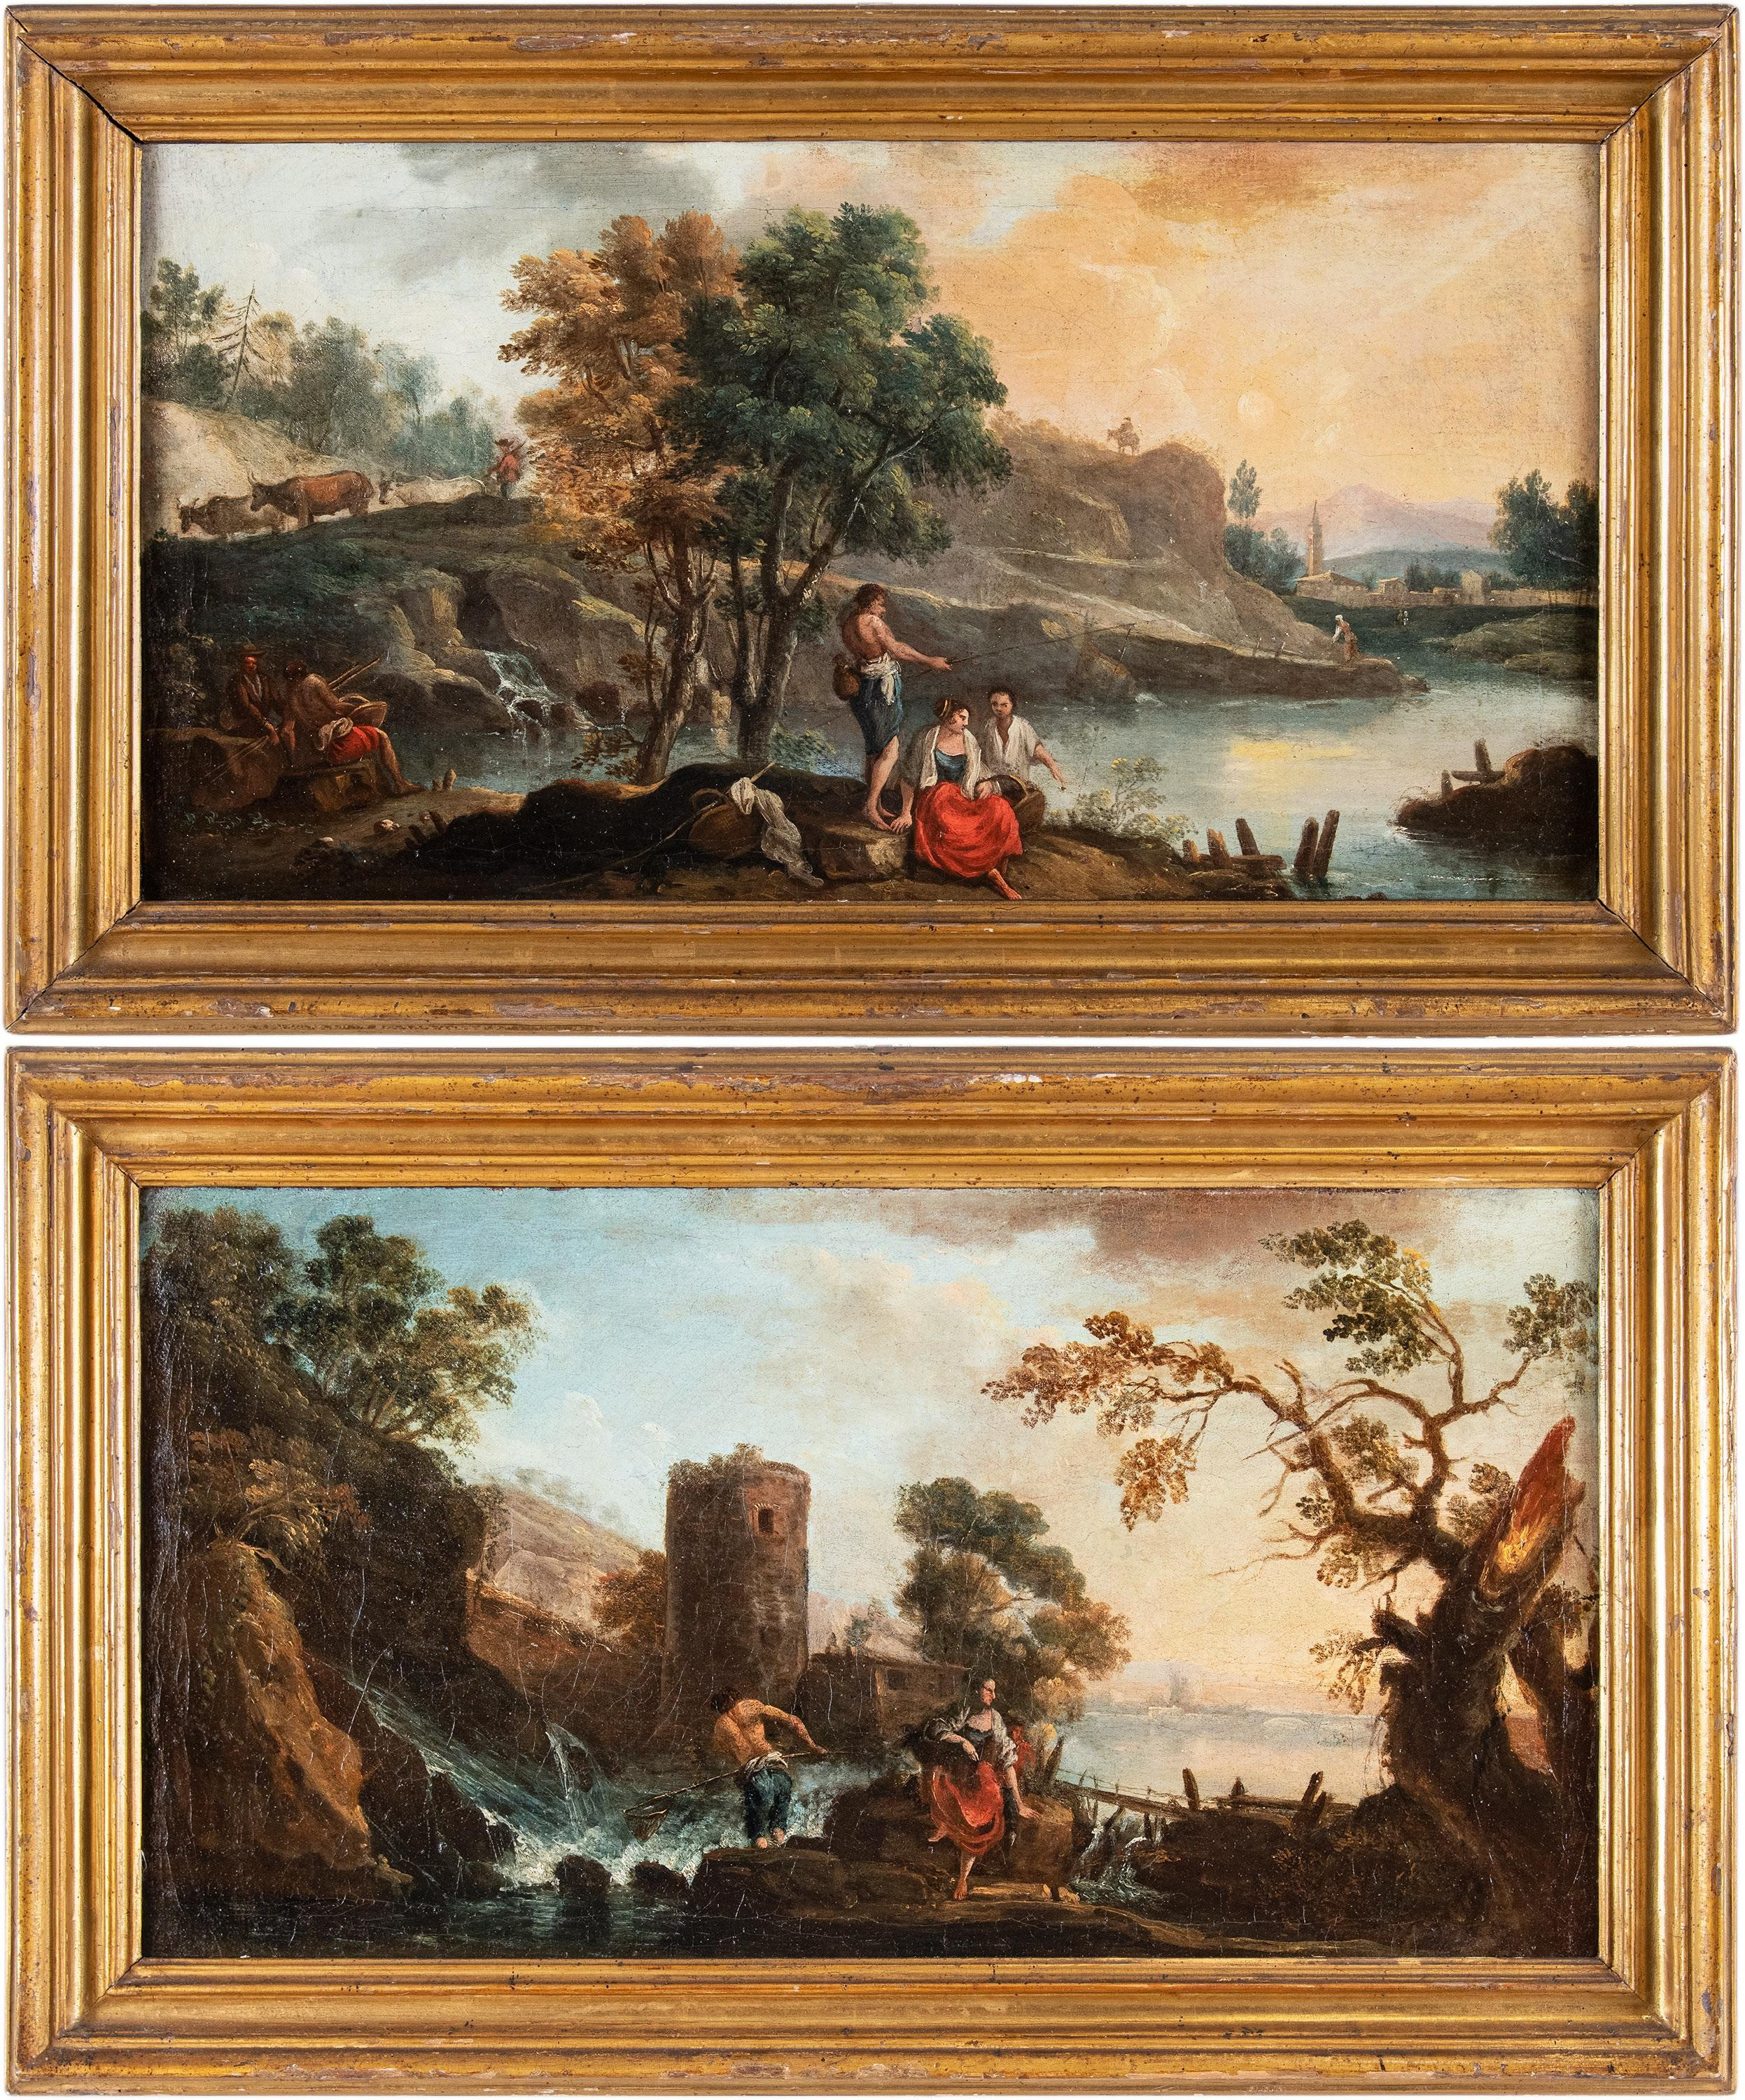 Pair of 18th century Venetian lanscape paintings - Zuccarelli - Oil on canvas